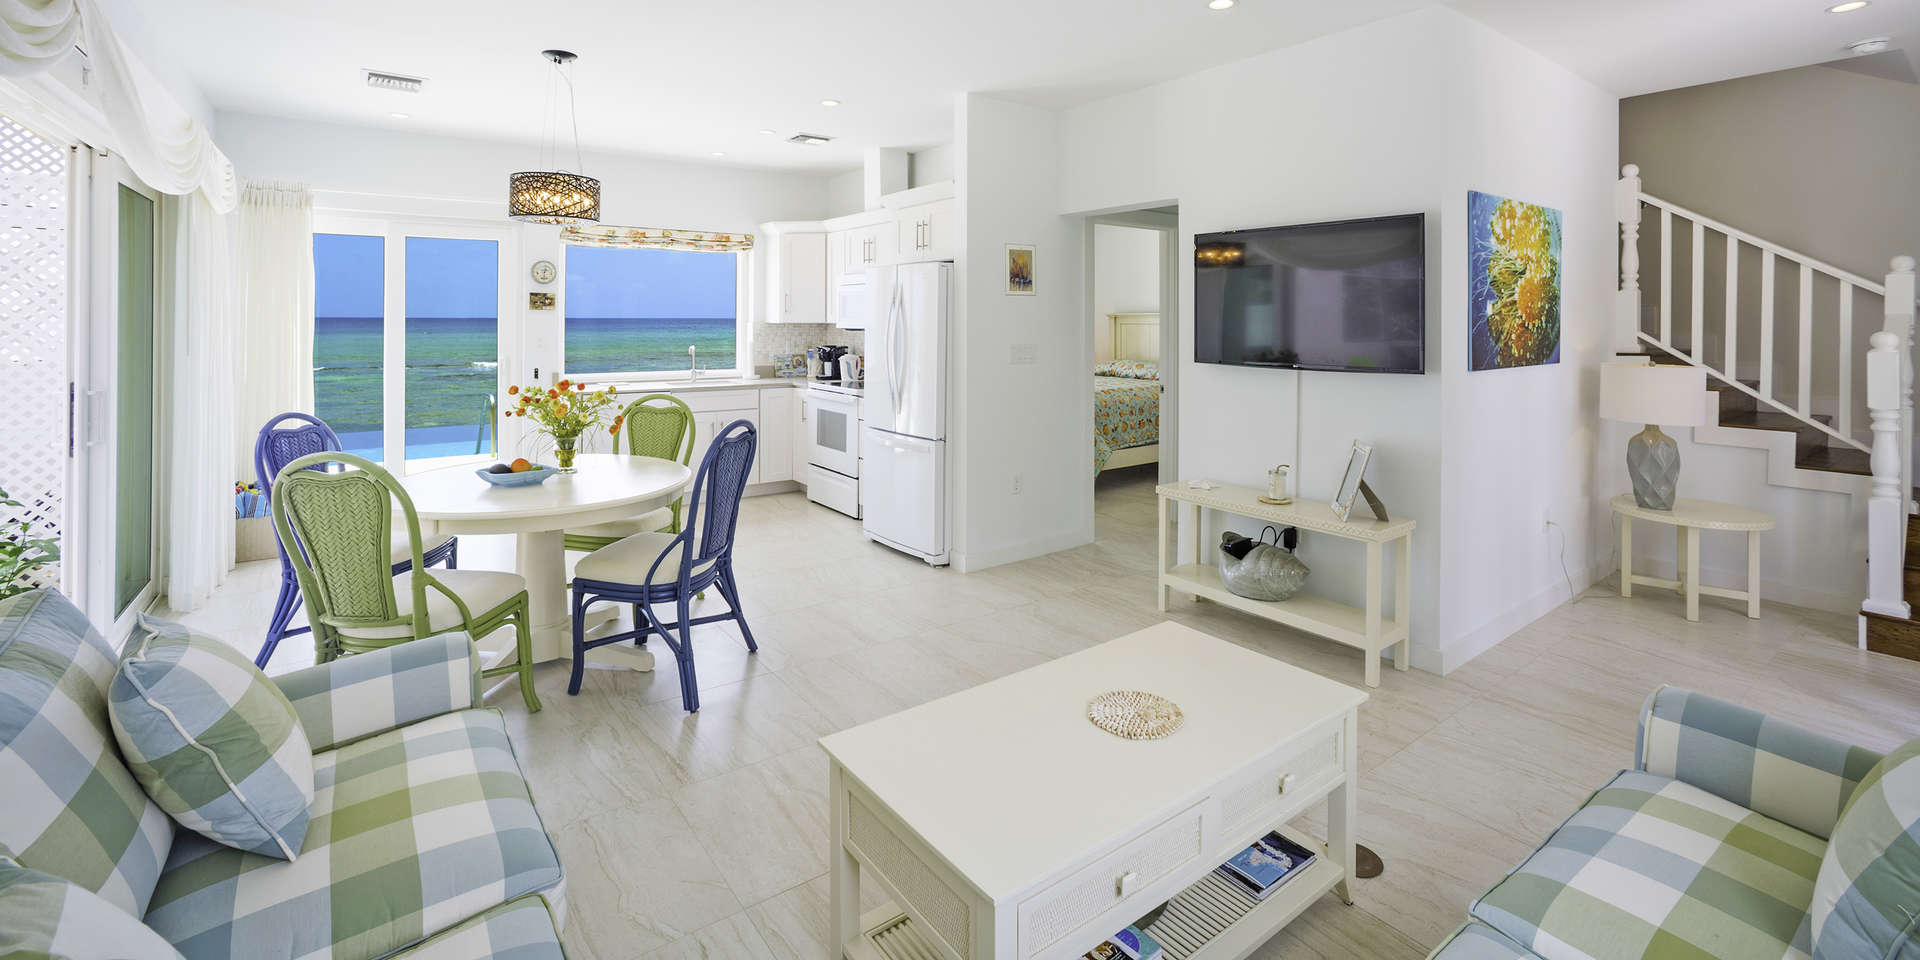 Luxury villa rentals caribbean - Cayman islands - Grand cayman - Old man bay - Coral Cottage Yellow - Image 1/11